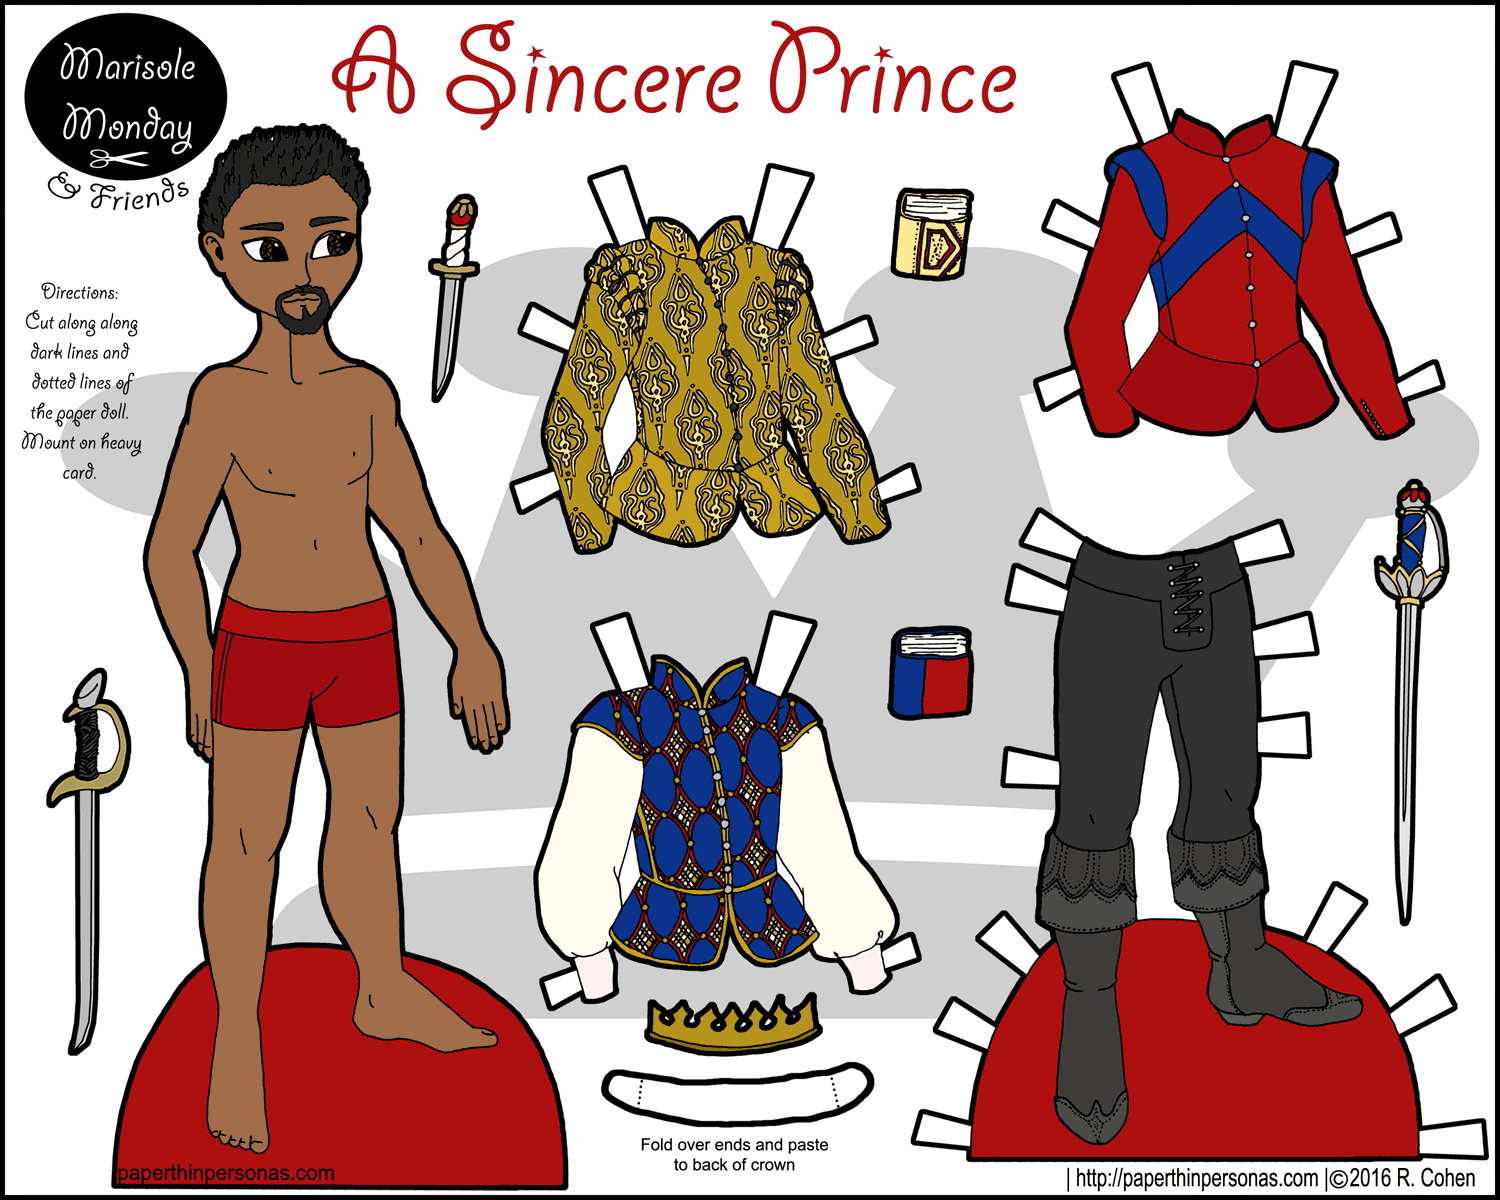 A Black Fairy Tale Prince Paper Doll With Four Piece Wardrobe Part Of The